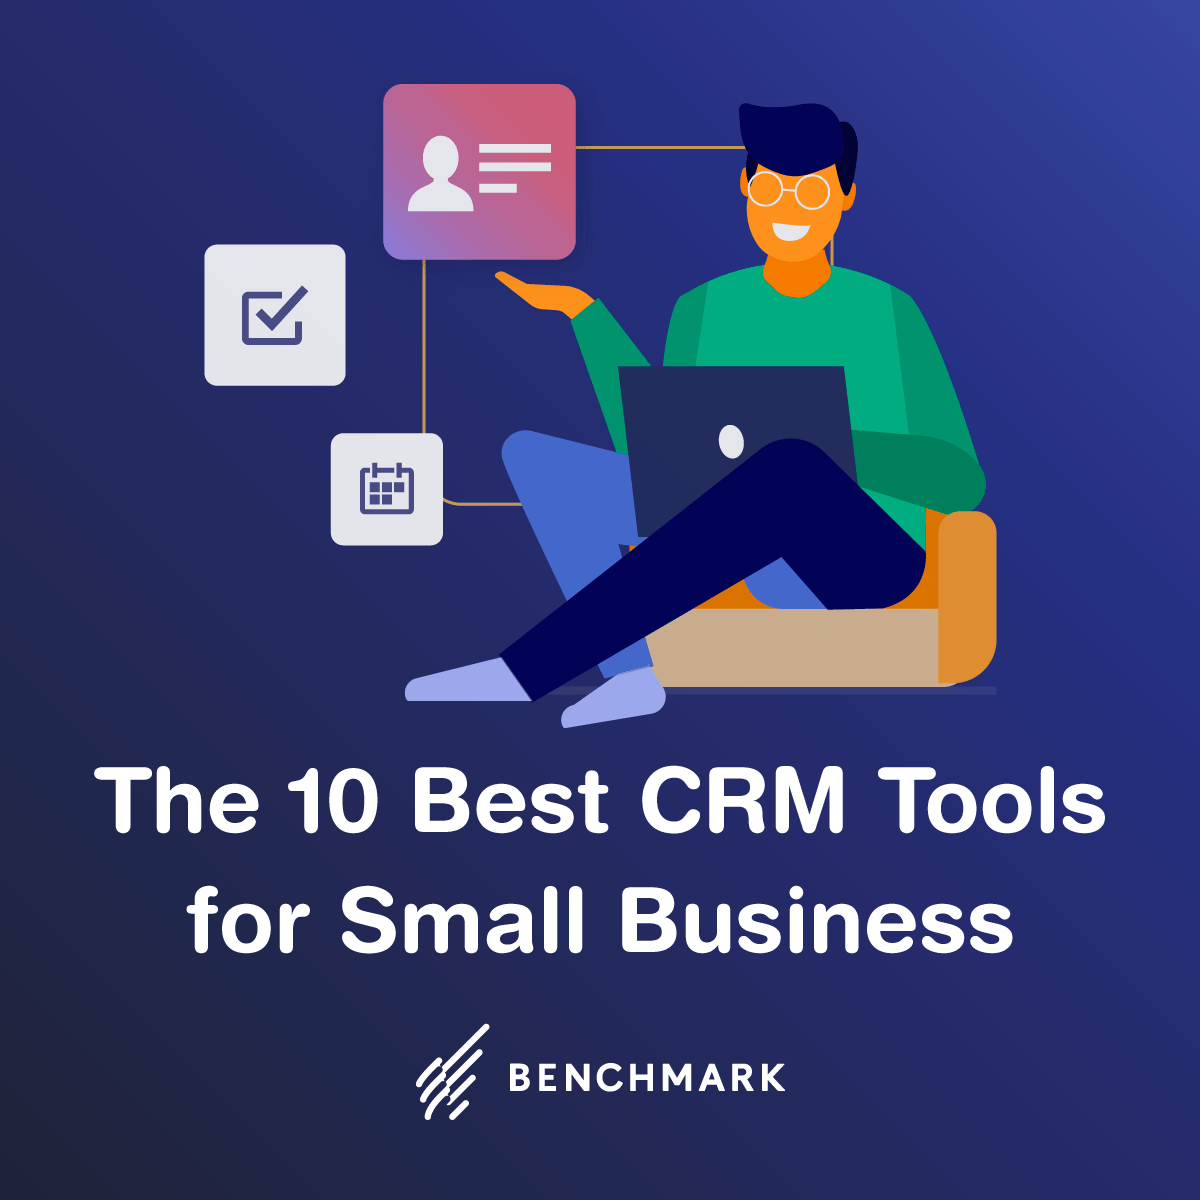 The 10 Best CRM Tools for Small Business